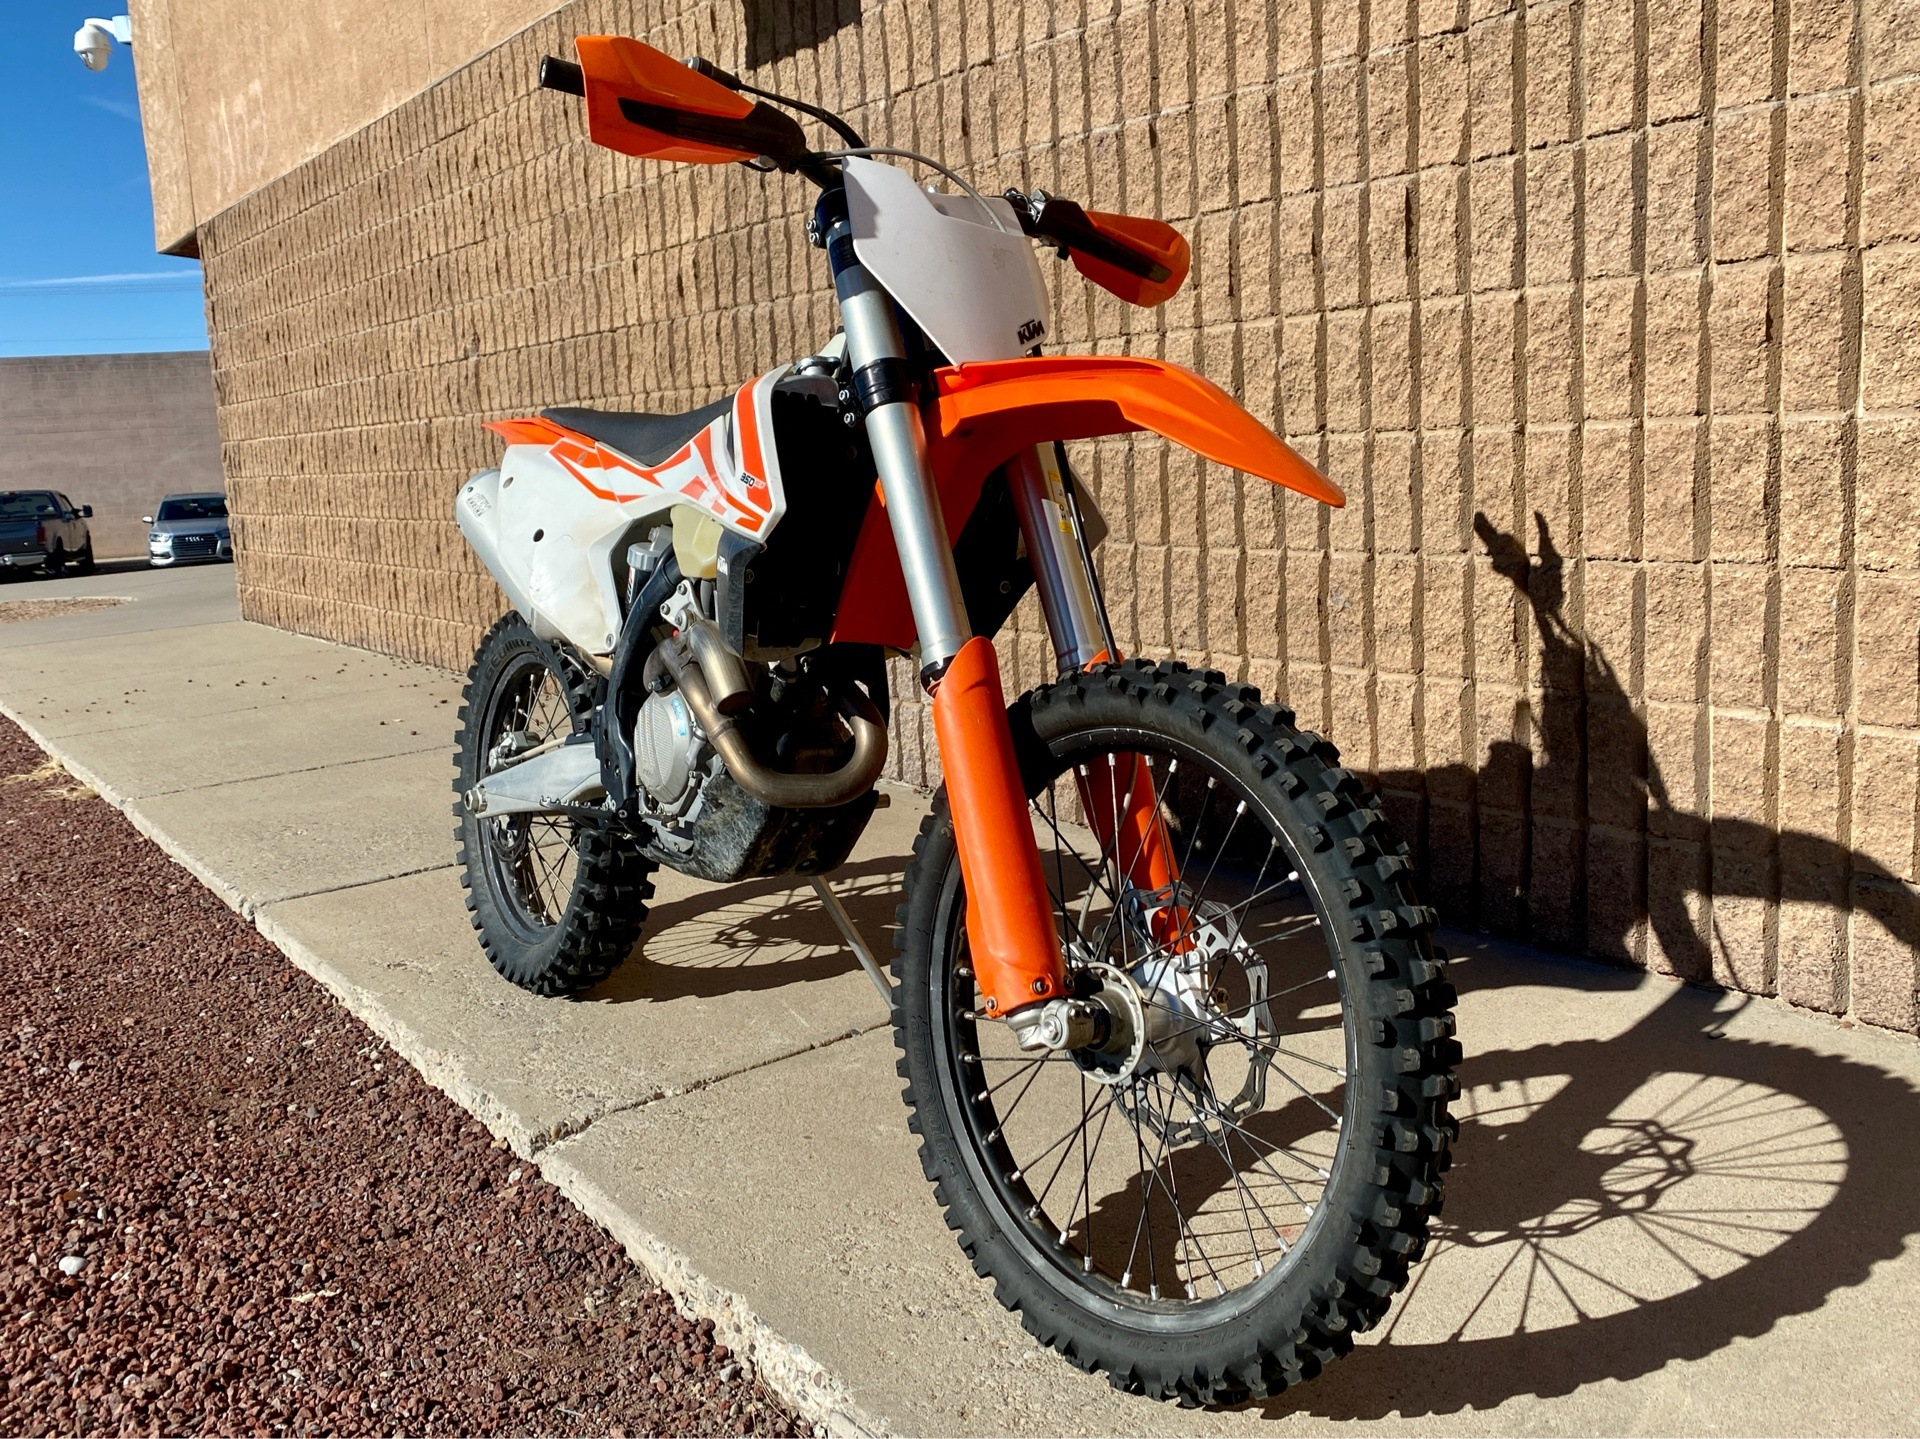 2017 KTM 350 XC-F in Albuquerque, New Mexico - Photo 2